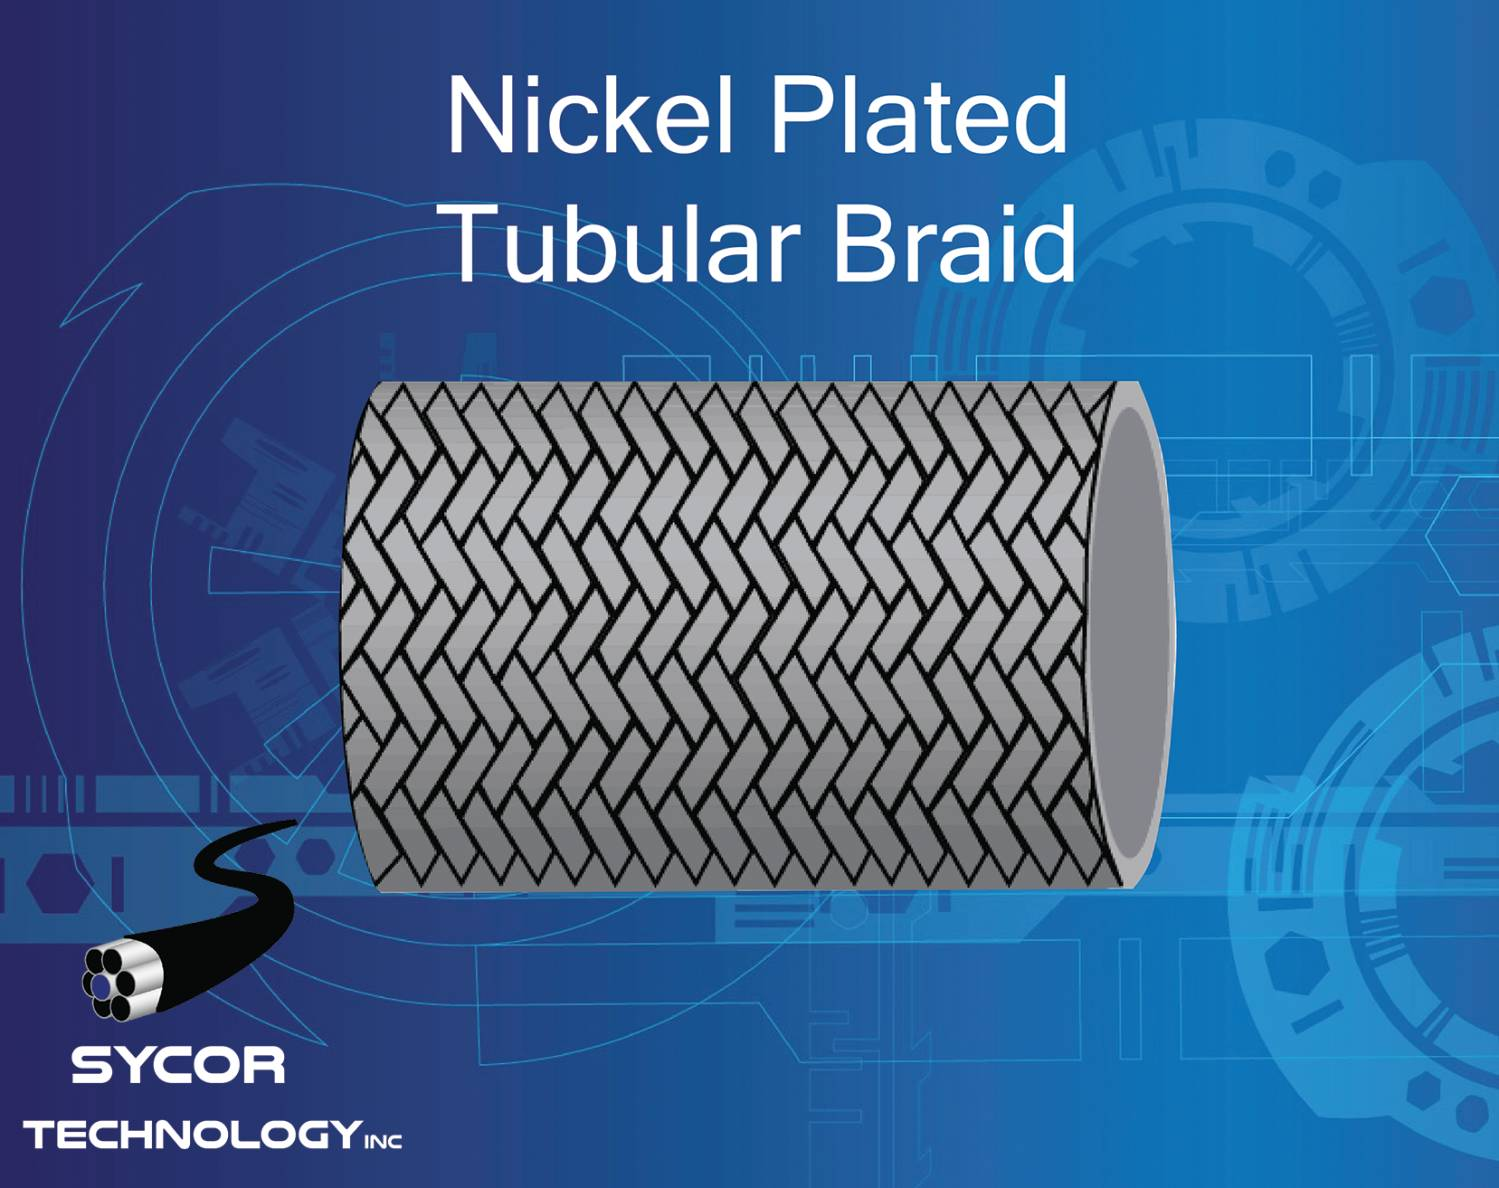 Nickel Plated Tubular Braid